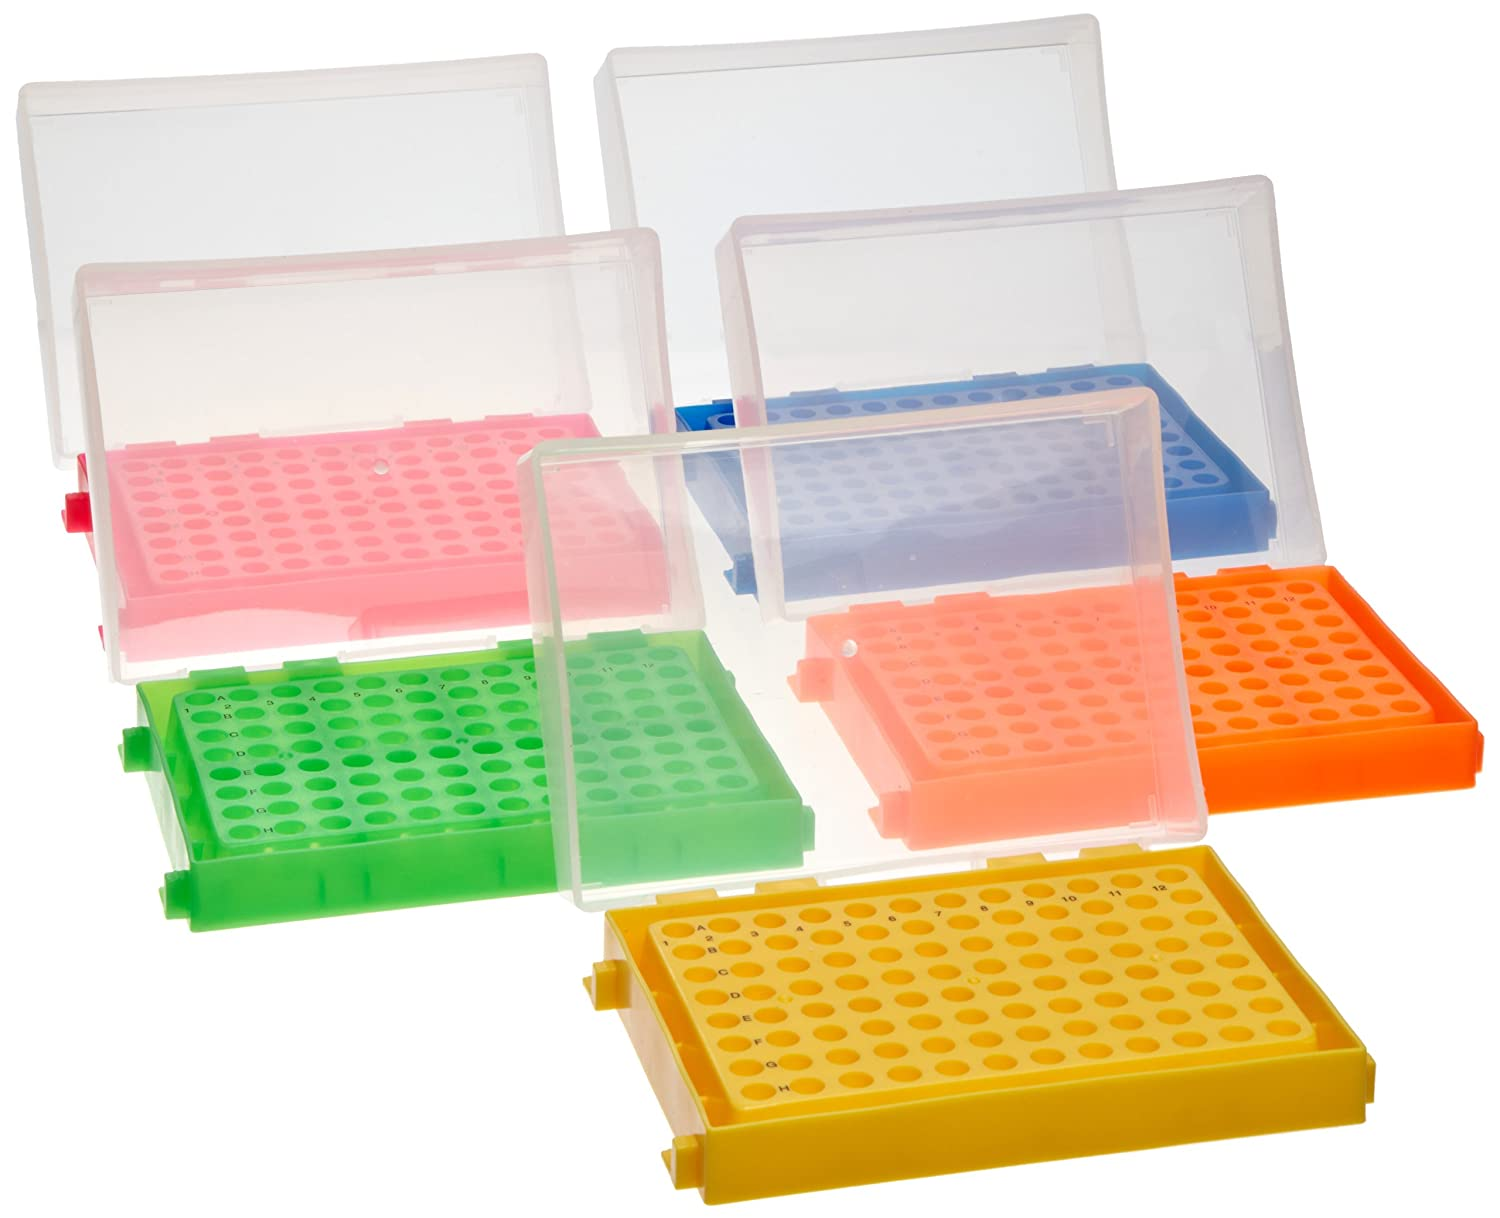 Heathrow Scientific - Inventory cleanup selling sale cheap HEA23461A HD23461A 9 Piece Polypropylene 5